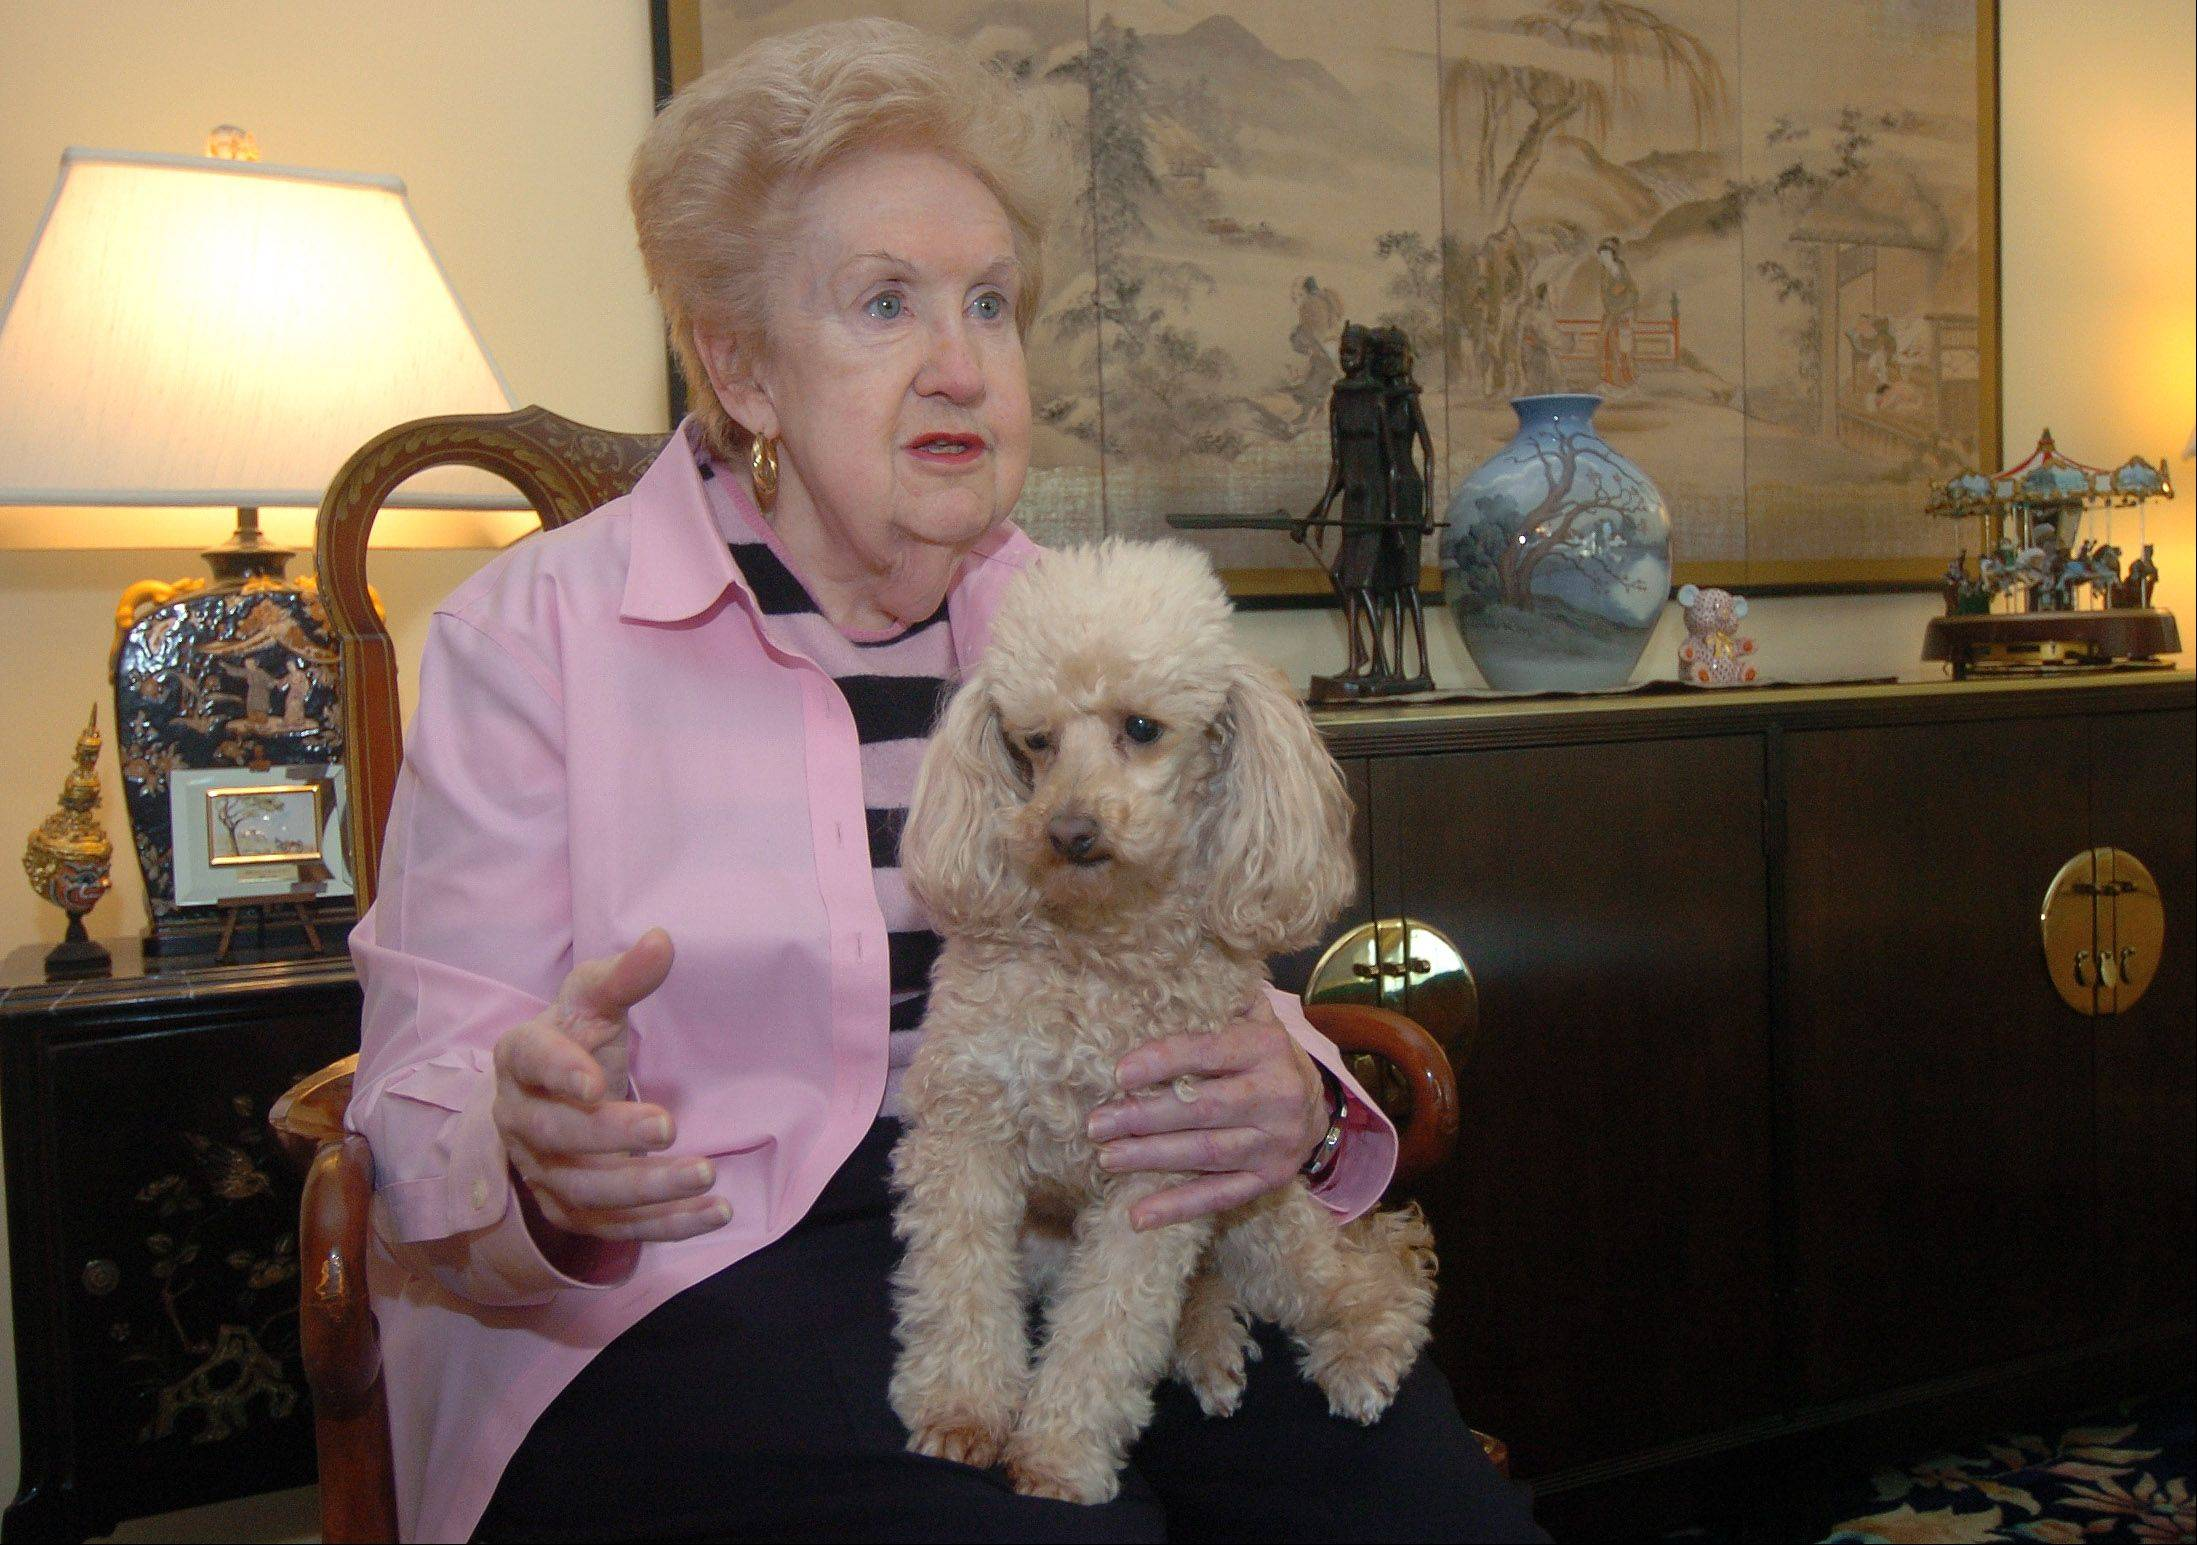 ahnolan_1na102407JL Cook Photo0650248photo by Joe Lewnard///////Carole Nolan, a resident of the Moorings, Arlington Heights, has been inducted into the Illinois Seniors' Hall of Fame. With Nolan is her dog, Millie.